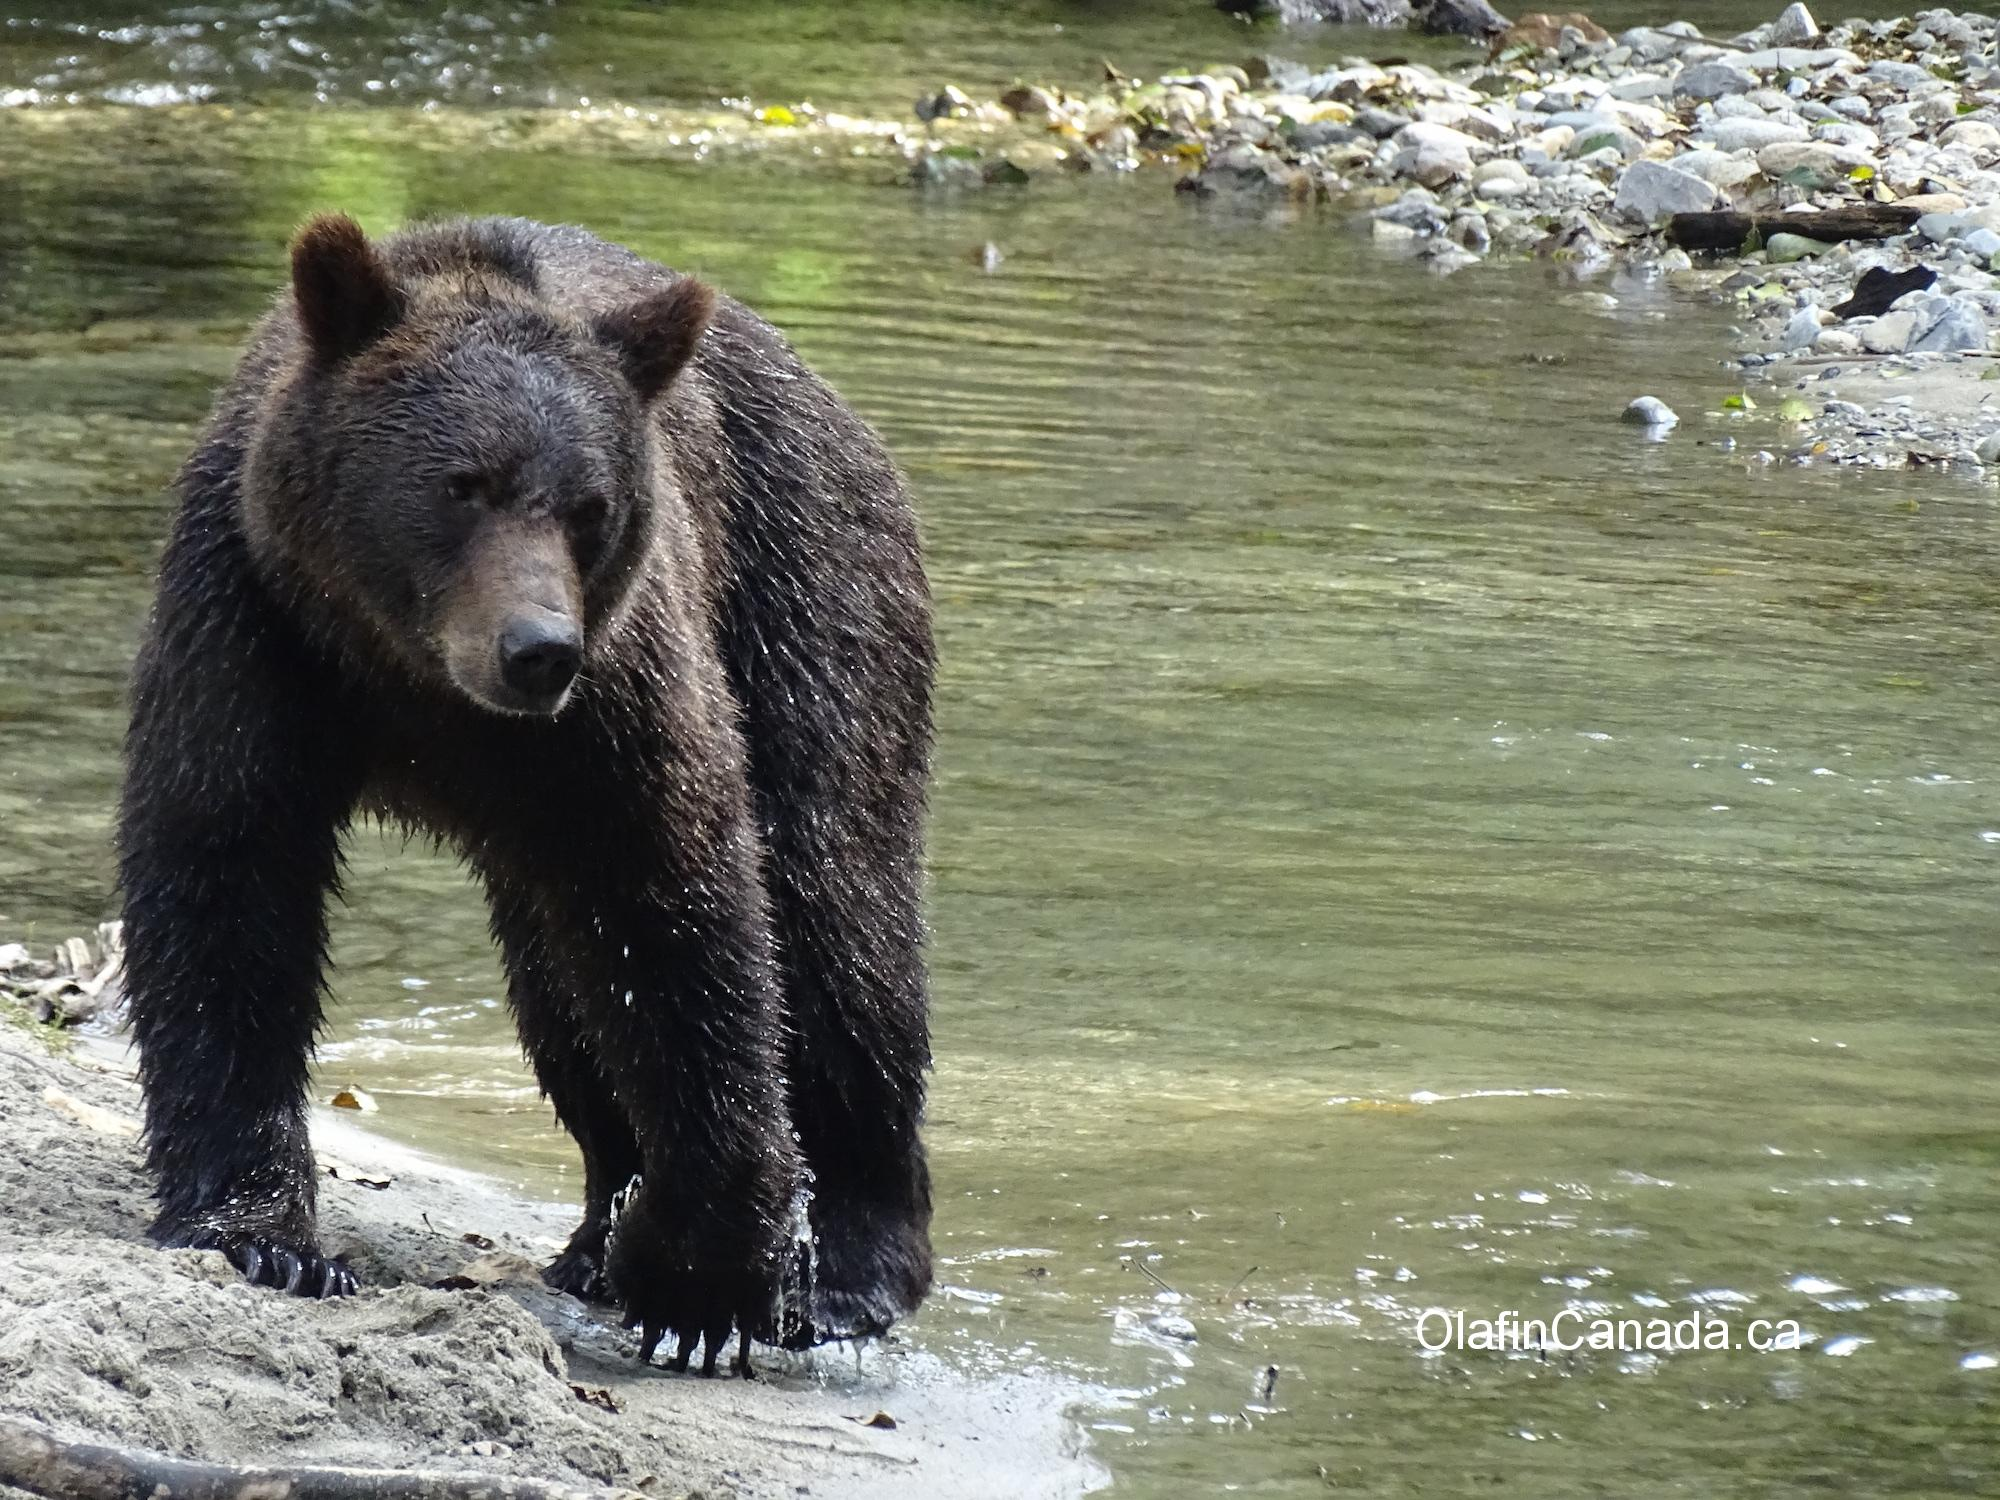 Grizzly on alert in Bute Inlet #olafincanada #britishcolumbia #discoverbc #wildlife #buteinlet #grizzlybear